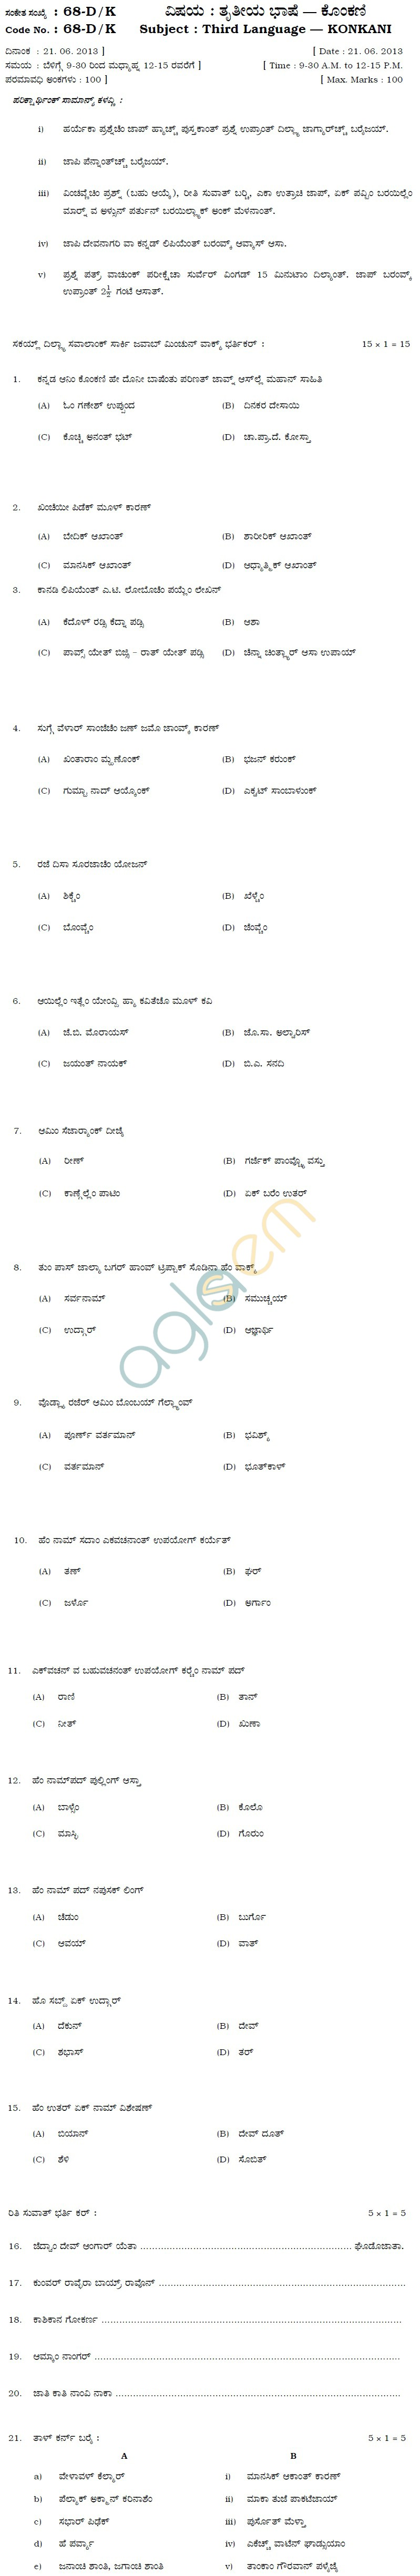 Karnataka SSLC Solved Question Paper June 2014 - Konkani III